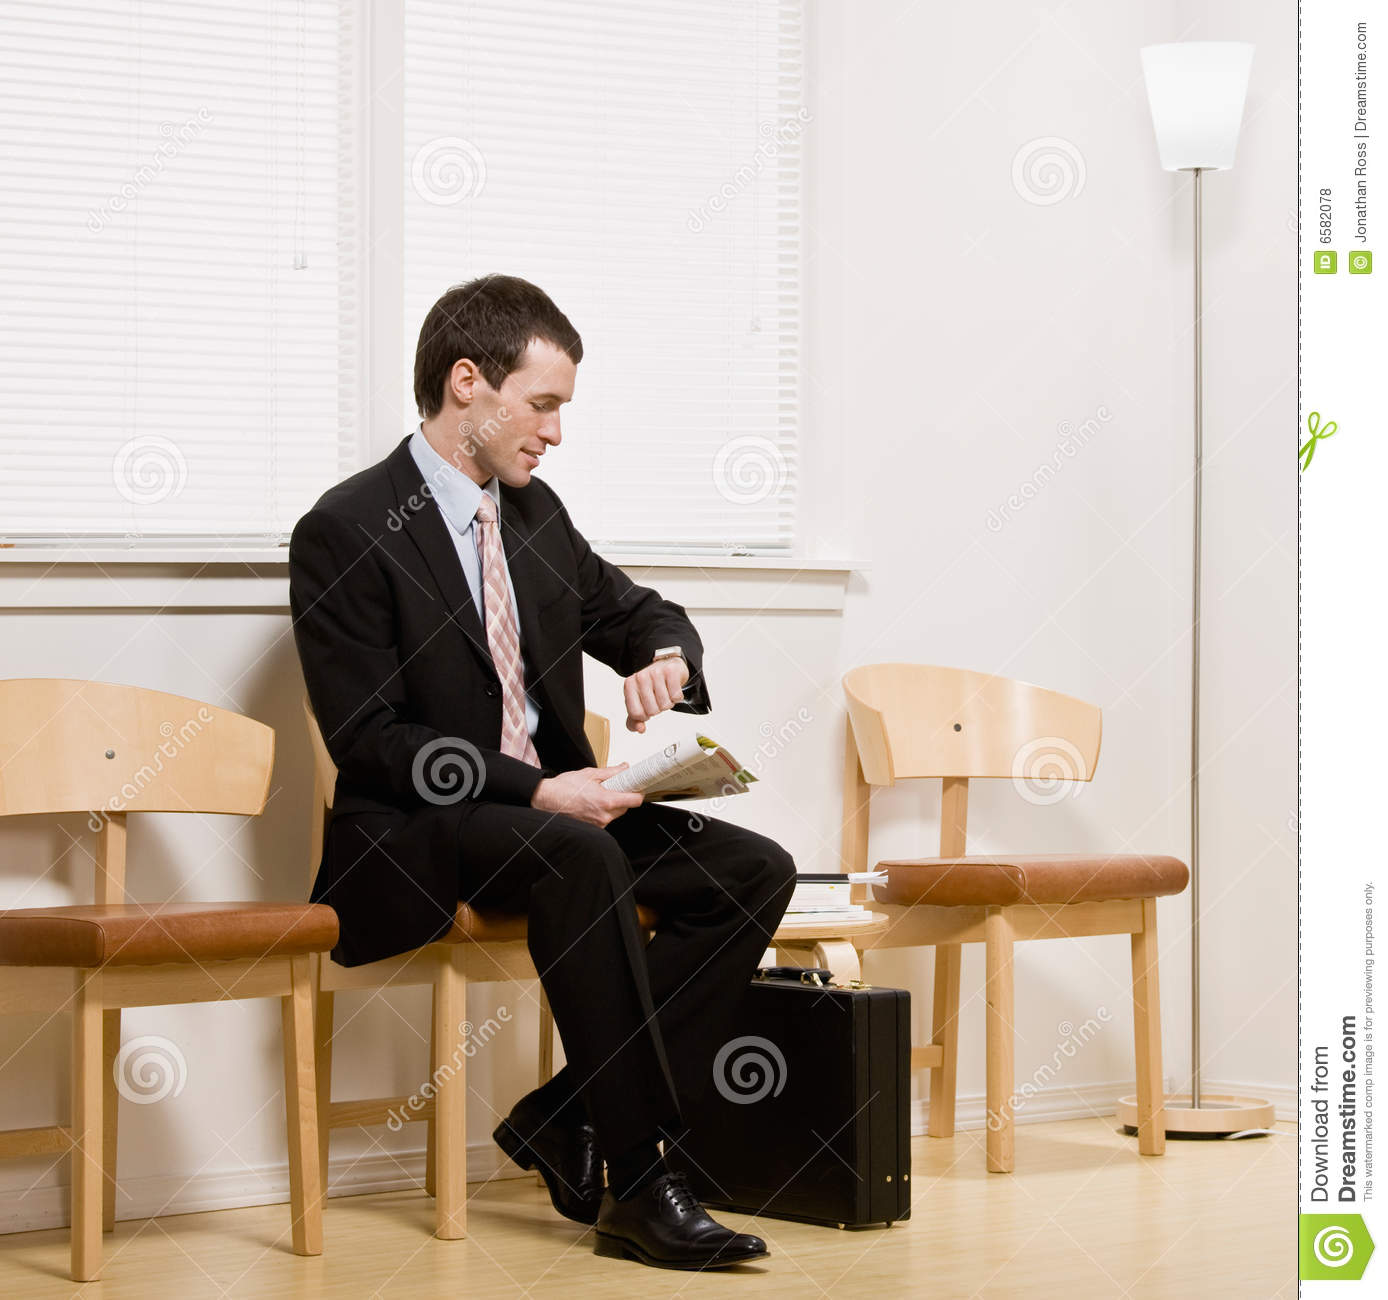 Businessman Anxiously Waiting For Appointment Royalty Free